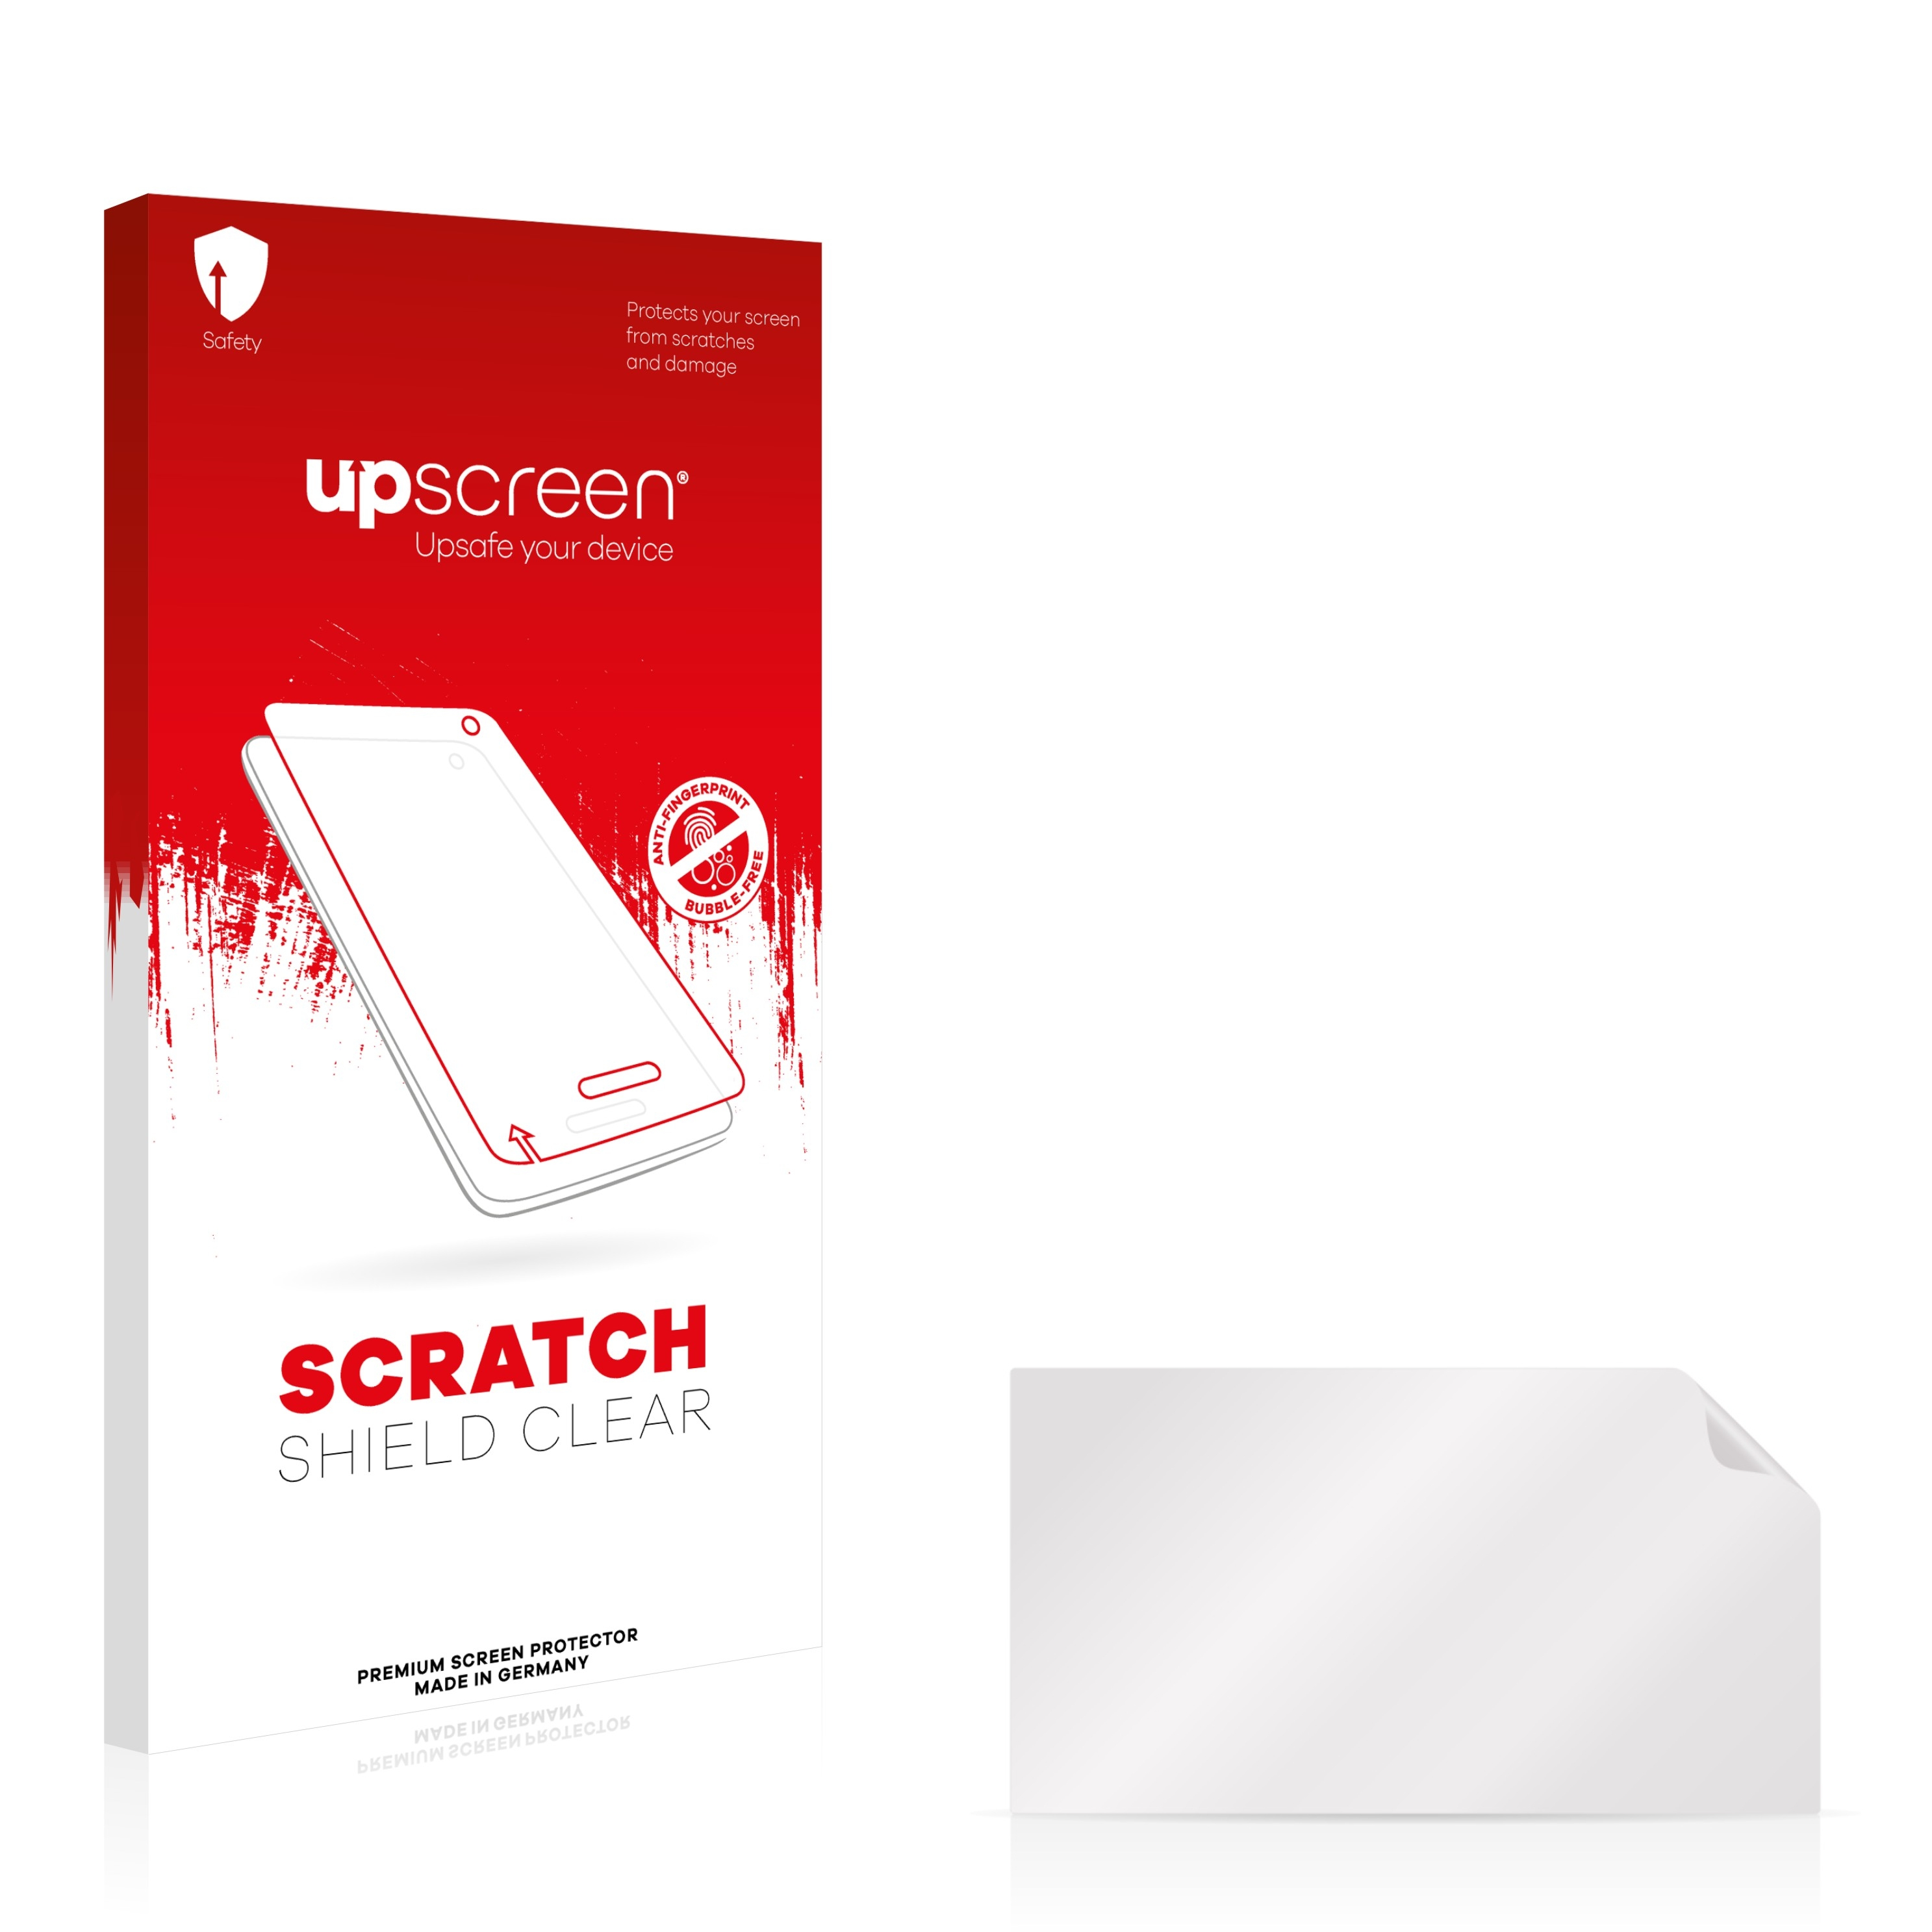 Multitouch Optimized Strong Scratch Protection upscreen Scratch Shield Clear Screen Protector for Sony HDR-CX450 High Transparency